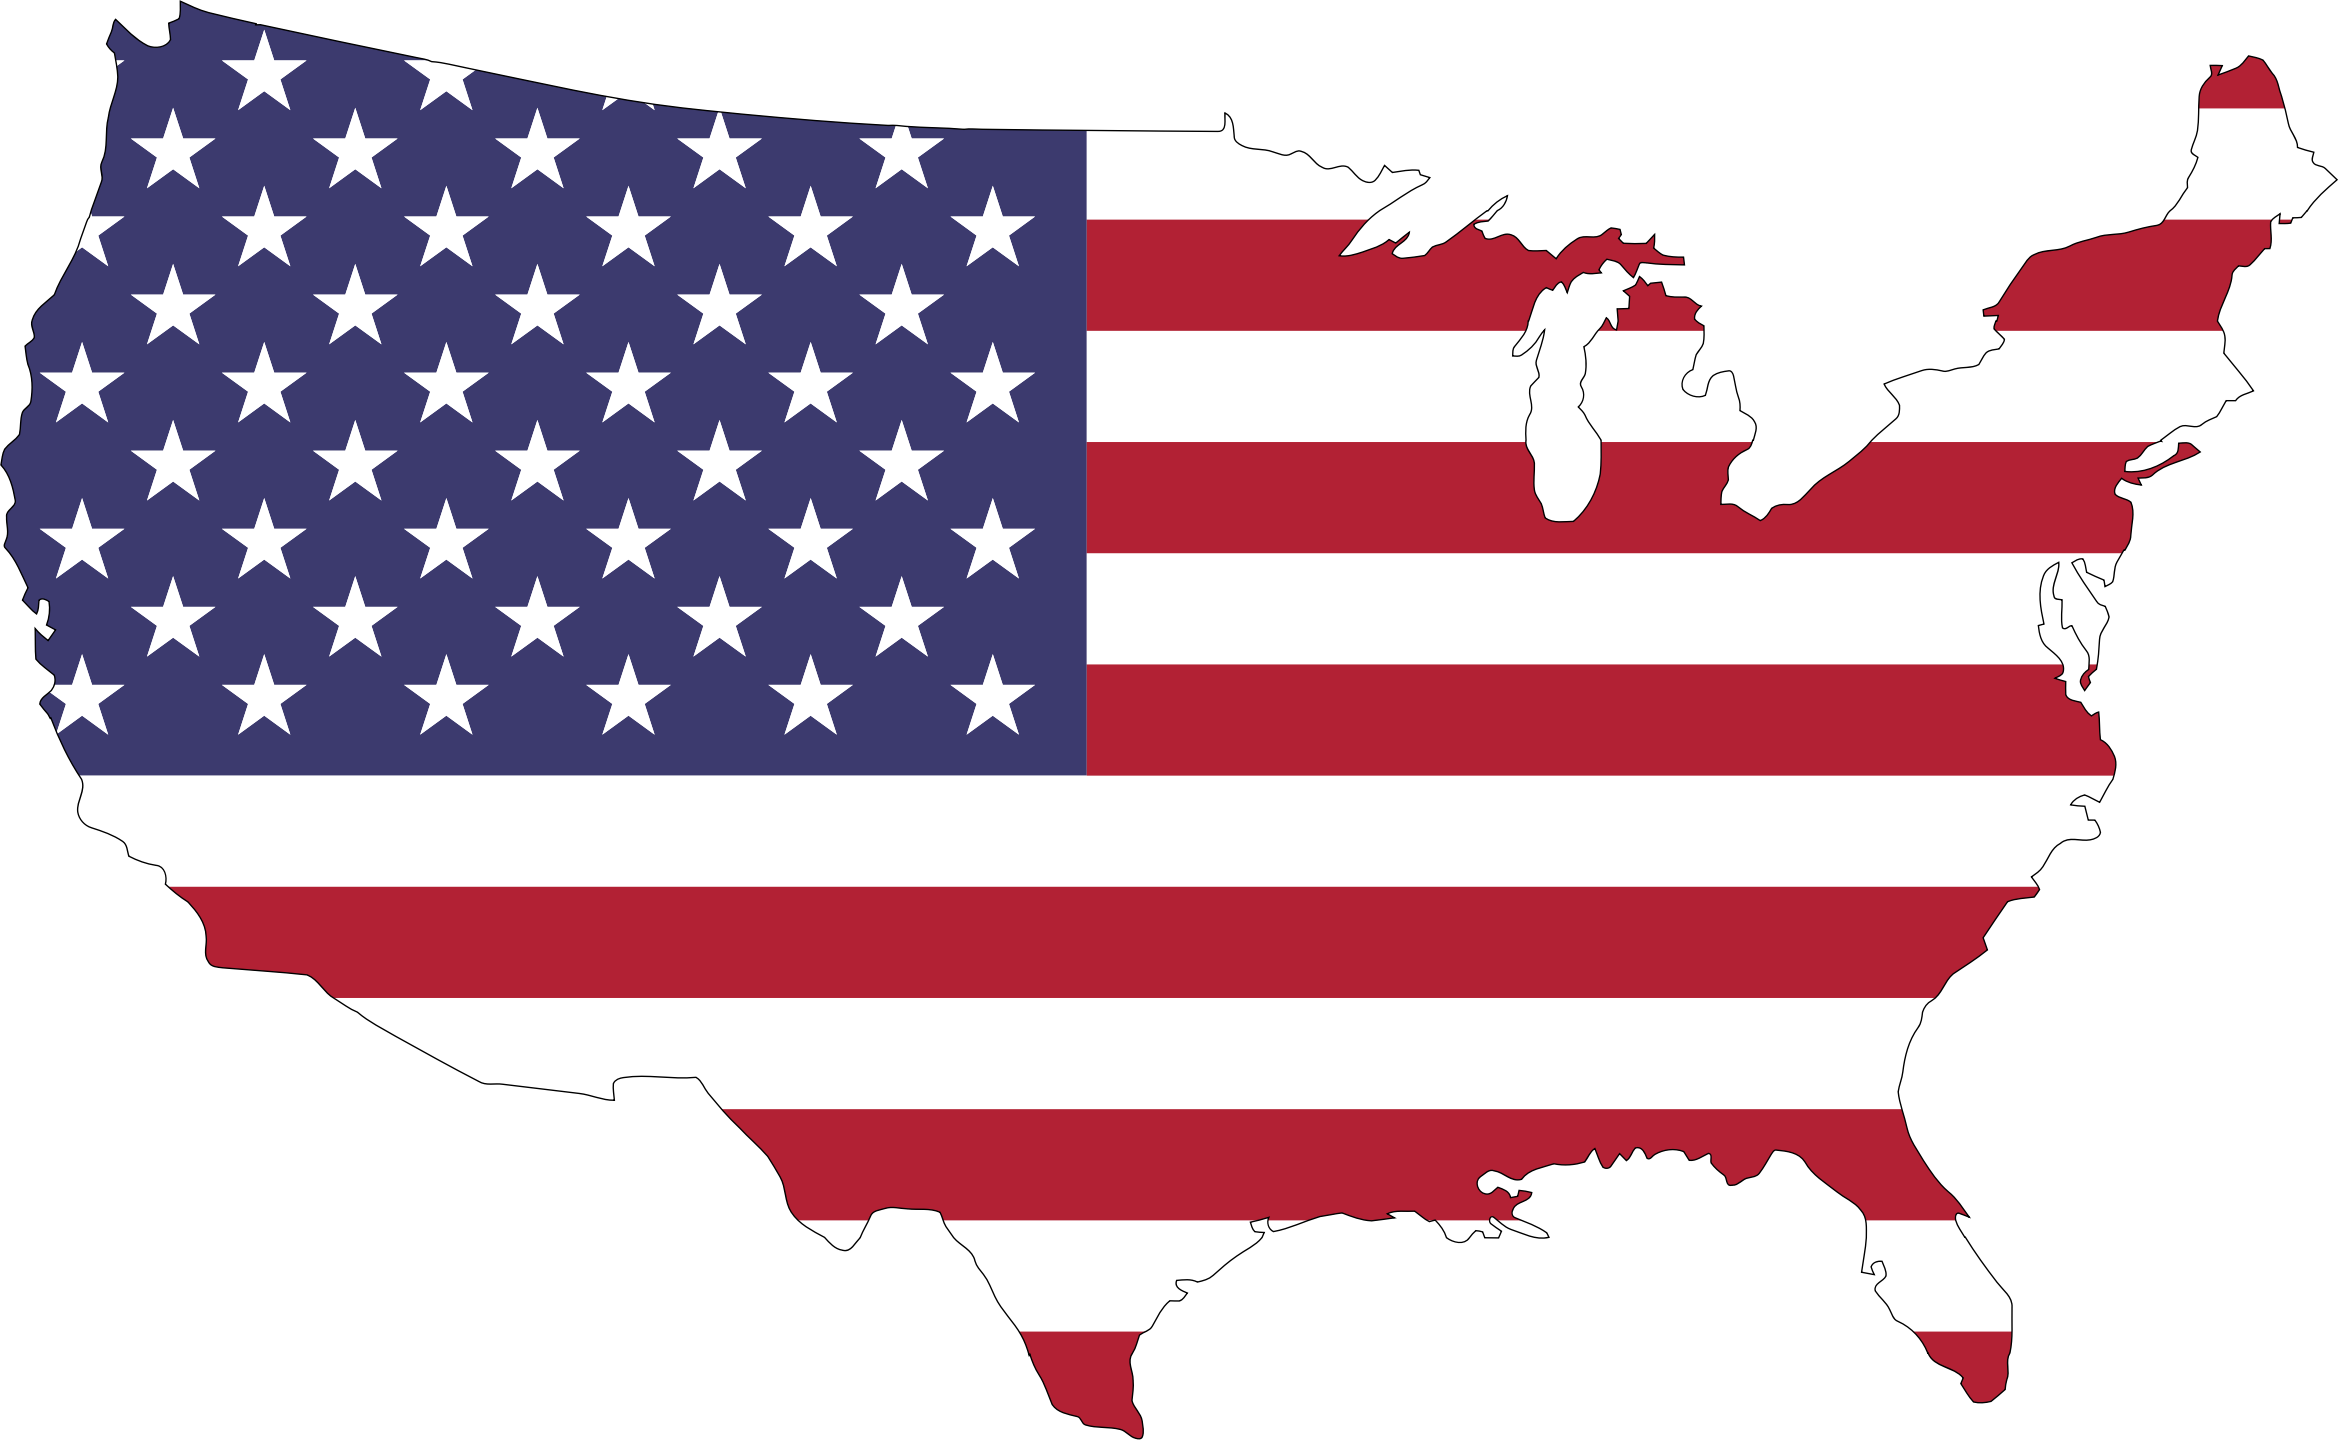 America Flag Map With Stroke by GDJ